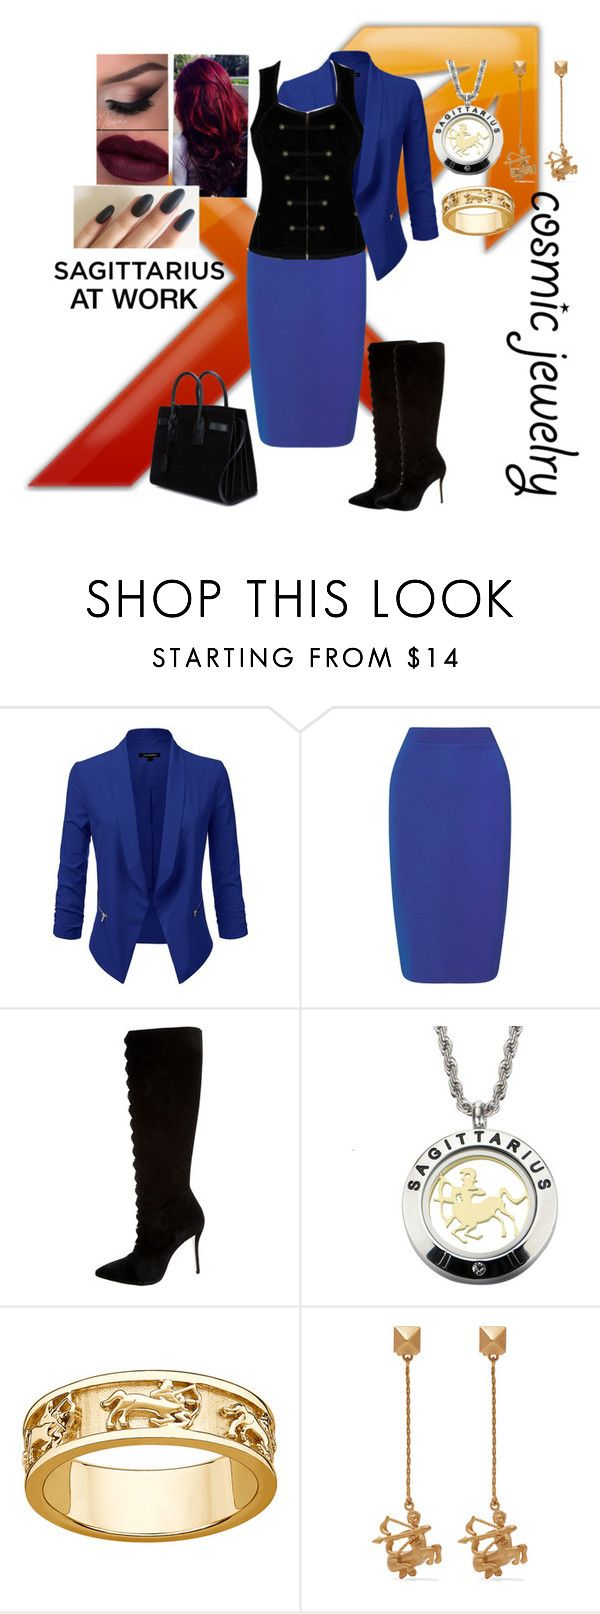 """Sagittarius at work"" by harleyquinn-1970 ❤ liked on Polyvore featuring Miss Selfridge, Oscar de la Renta, Valentino and Yves Saint Laurent"